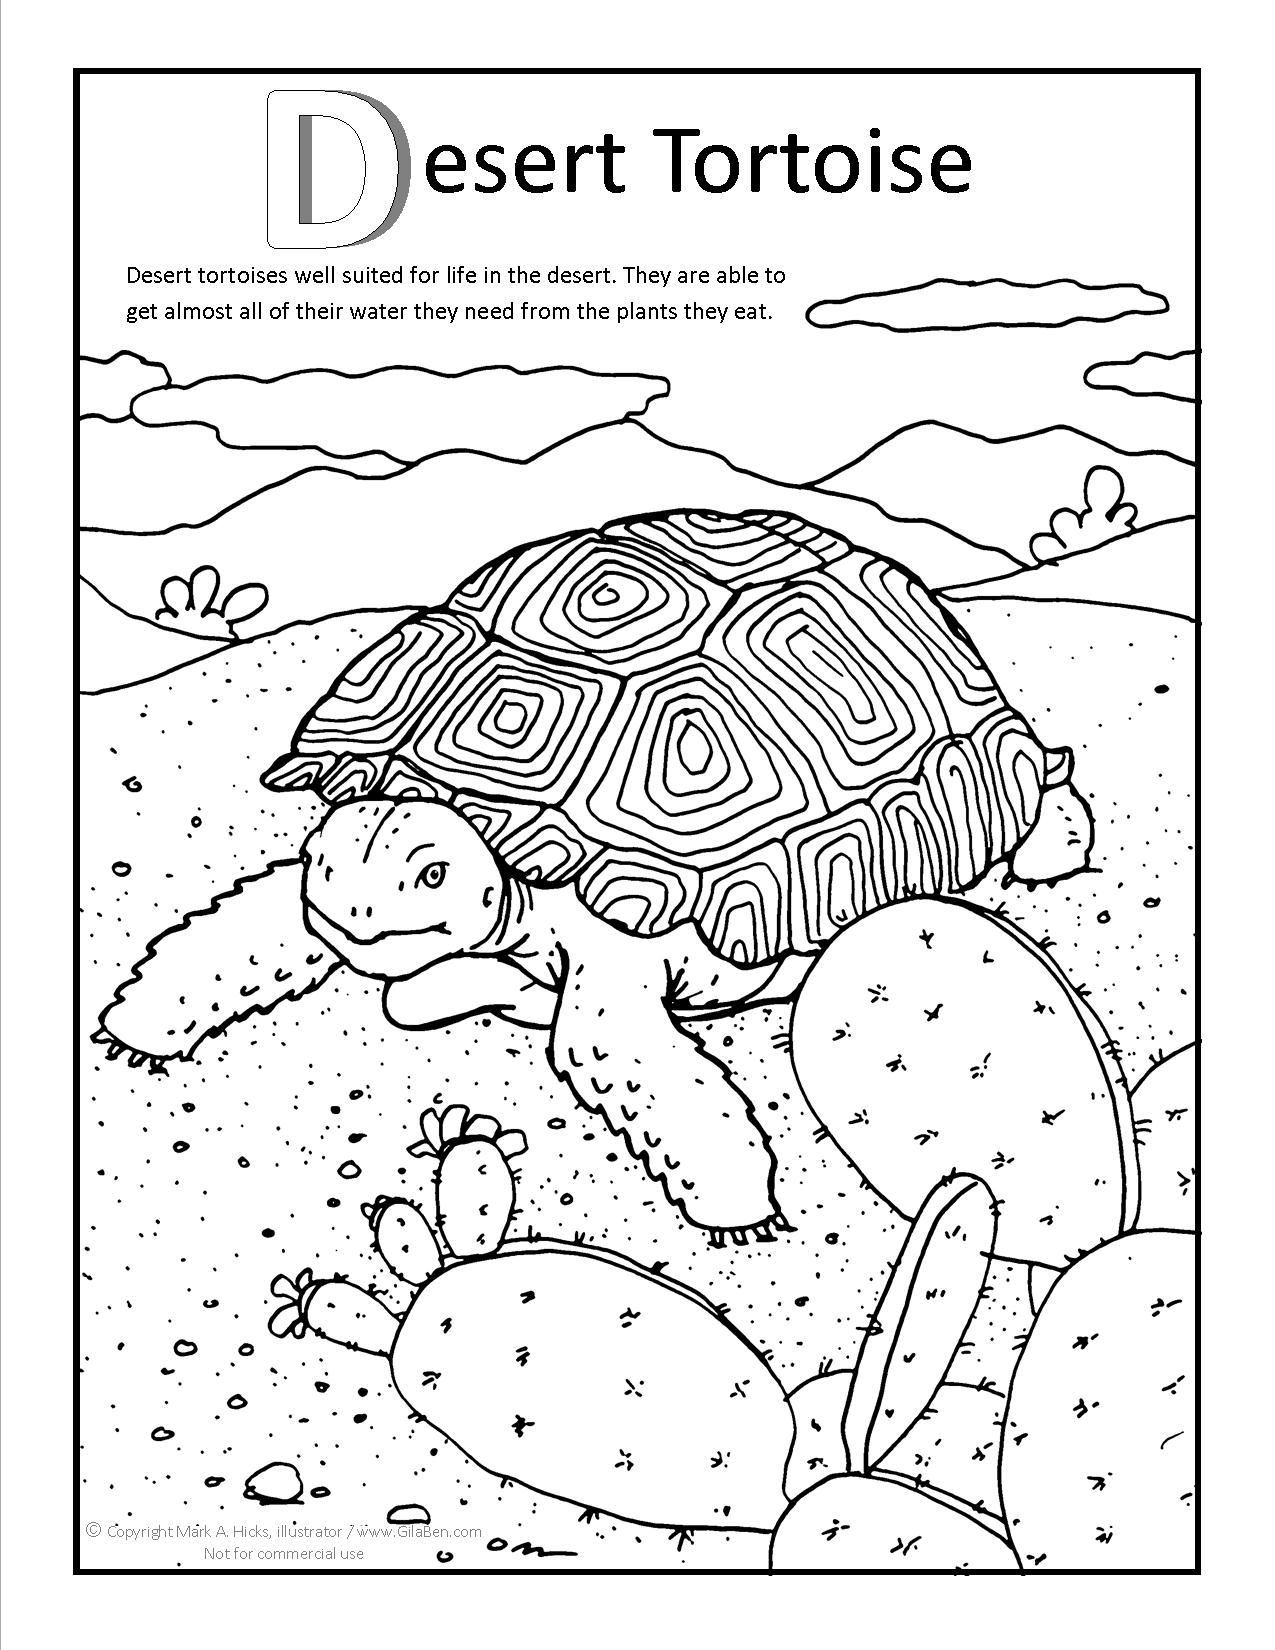 desert tortoise coloring page at arizona coloring pages desert animals coloring. Black Bedroom Furniture Sets. Home Design Ideas